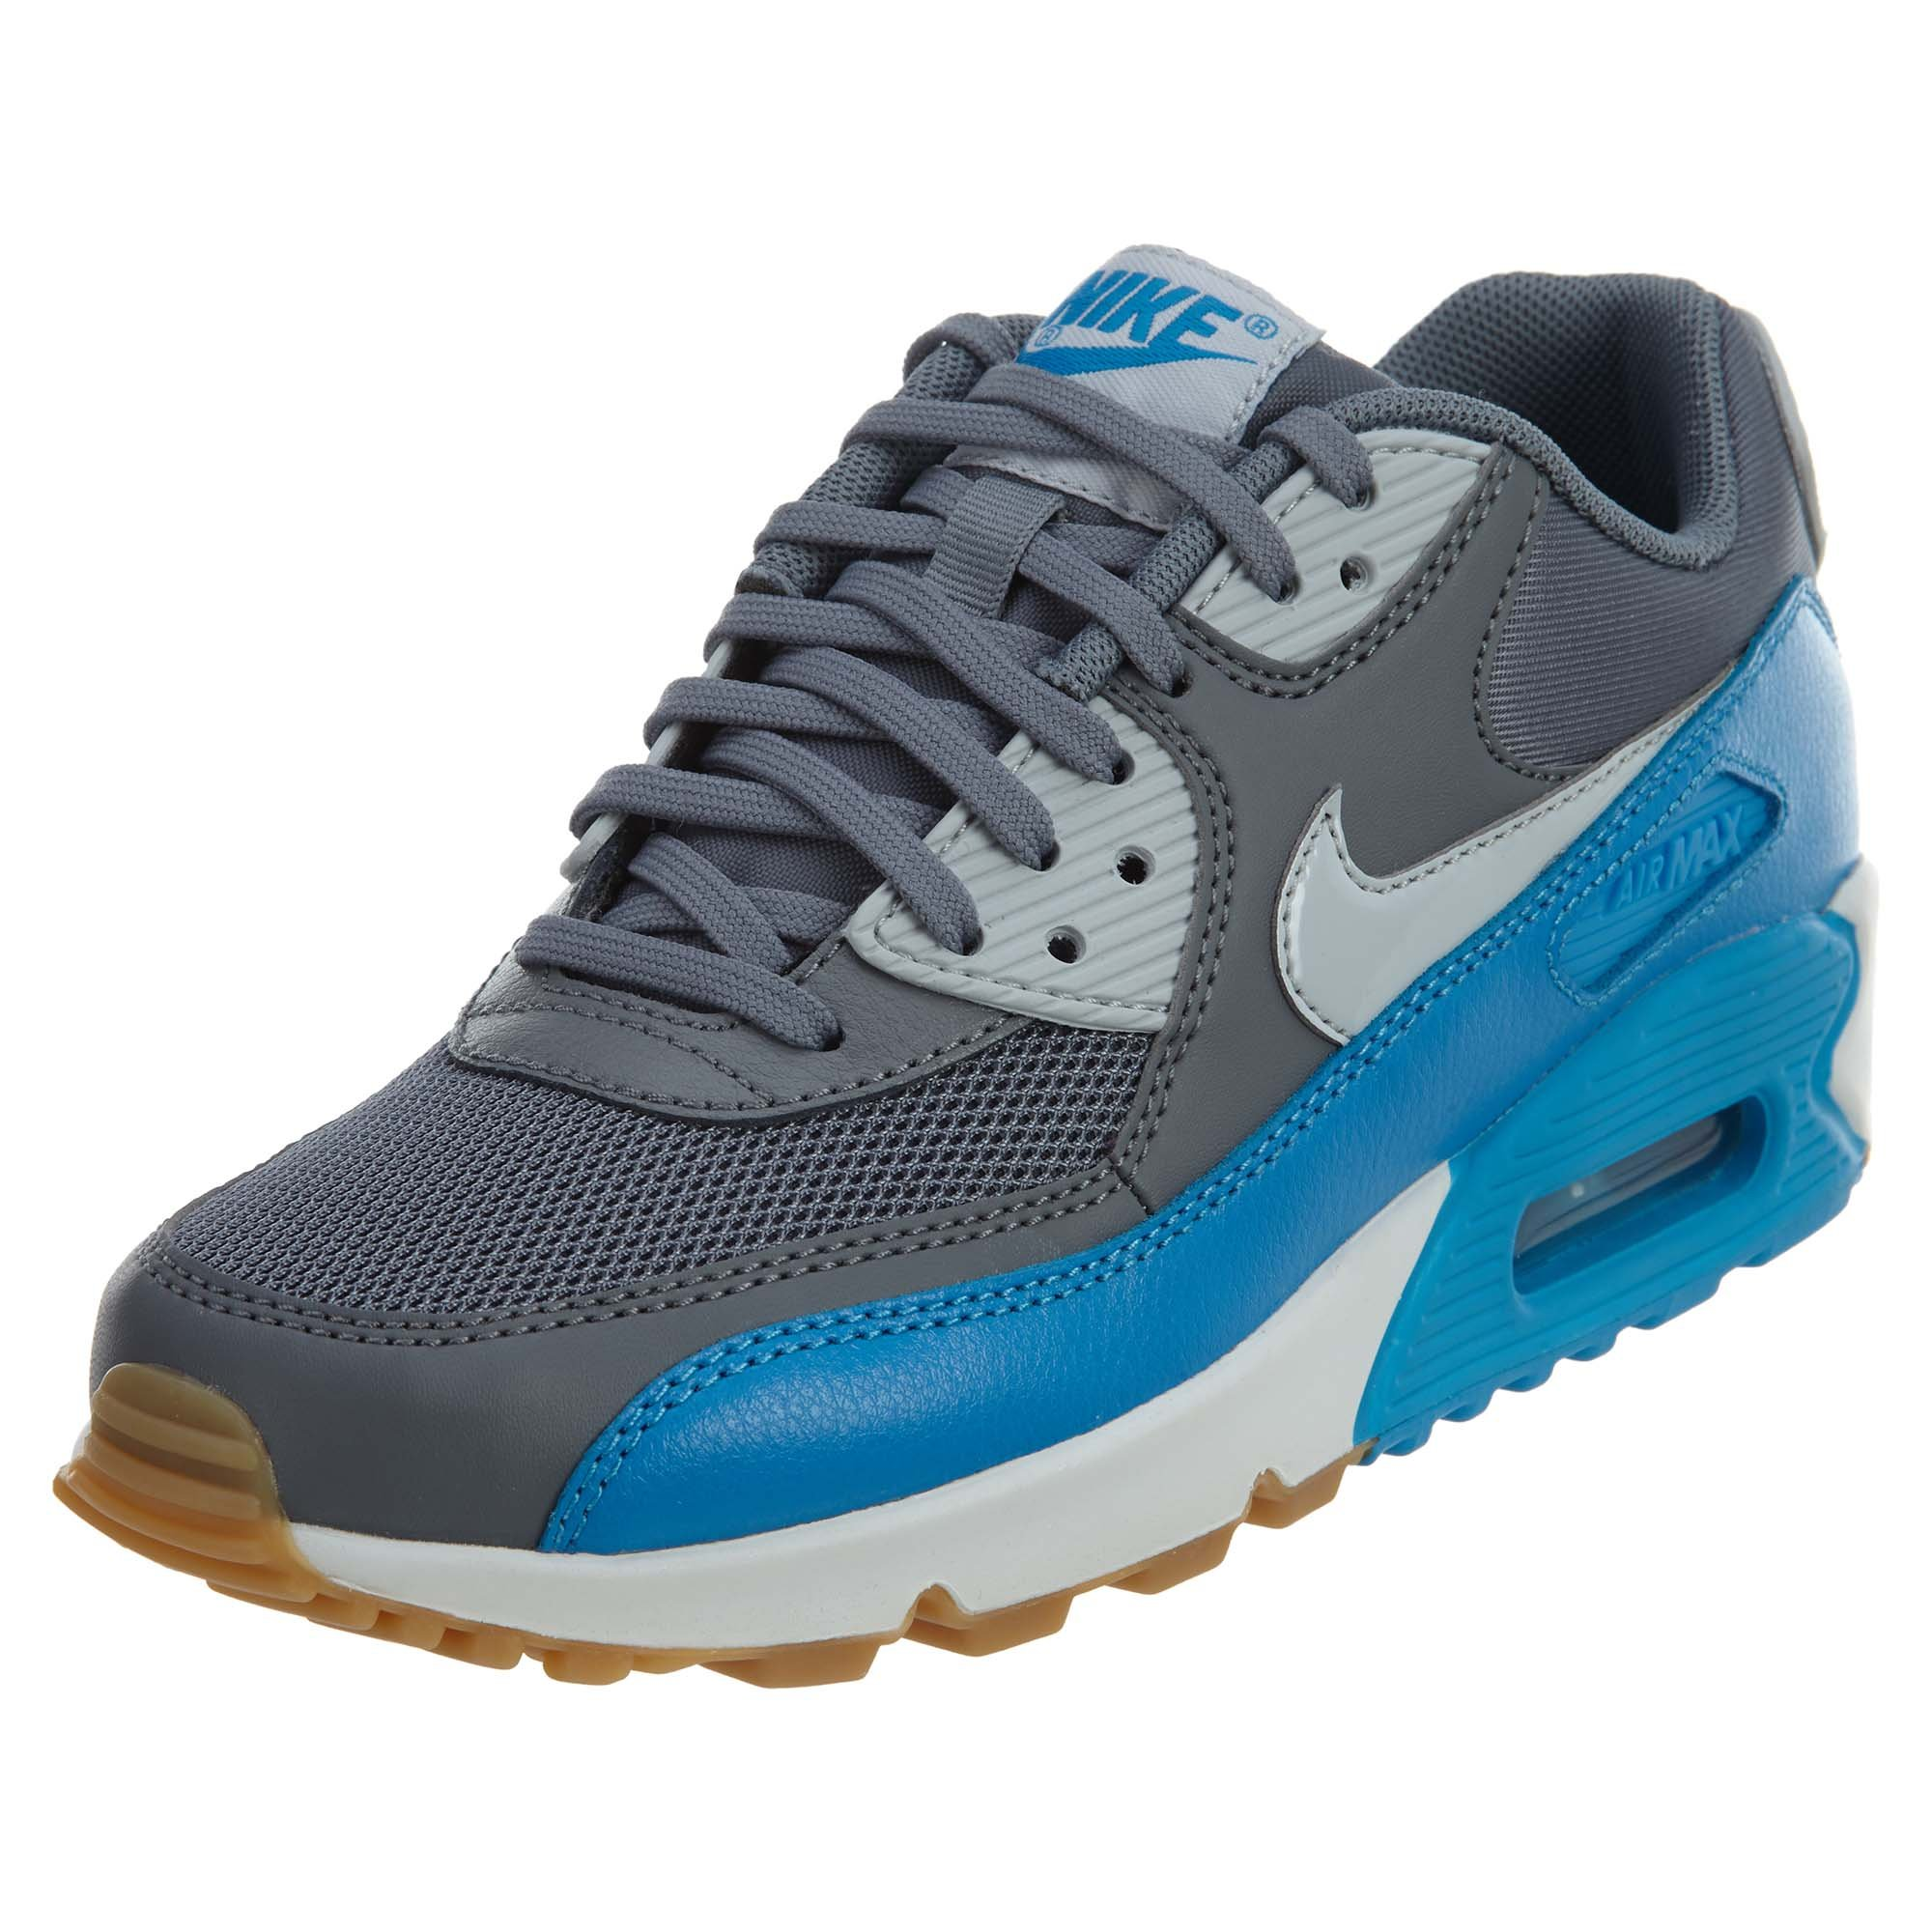 Nike Air Max 90 Essential Womens Style: 616730-031 Size: 6 M US